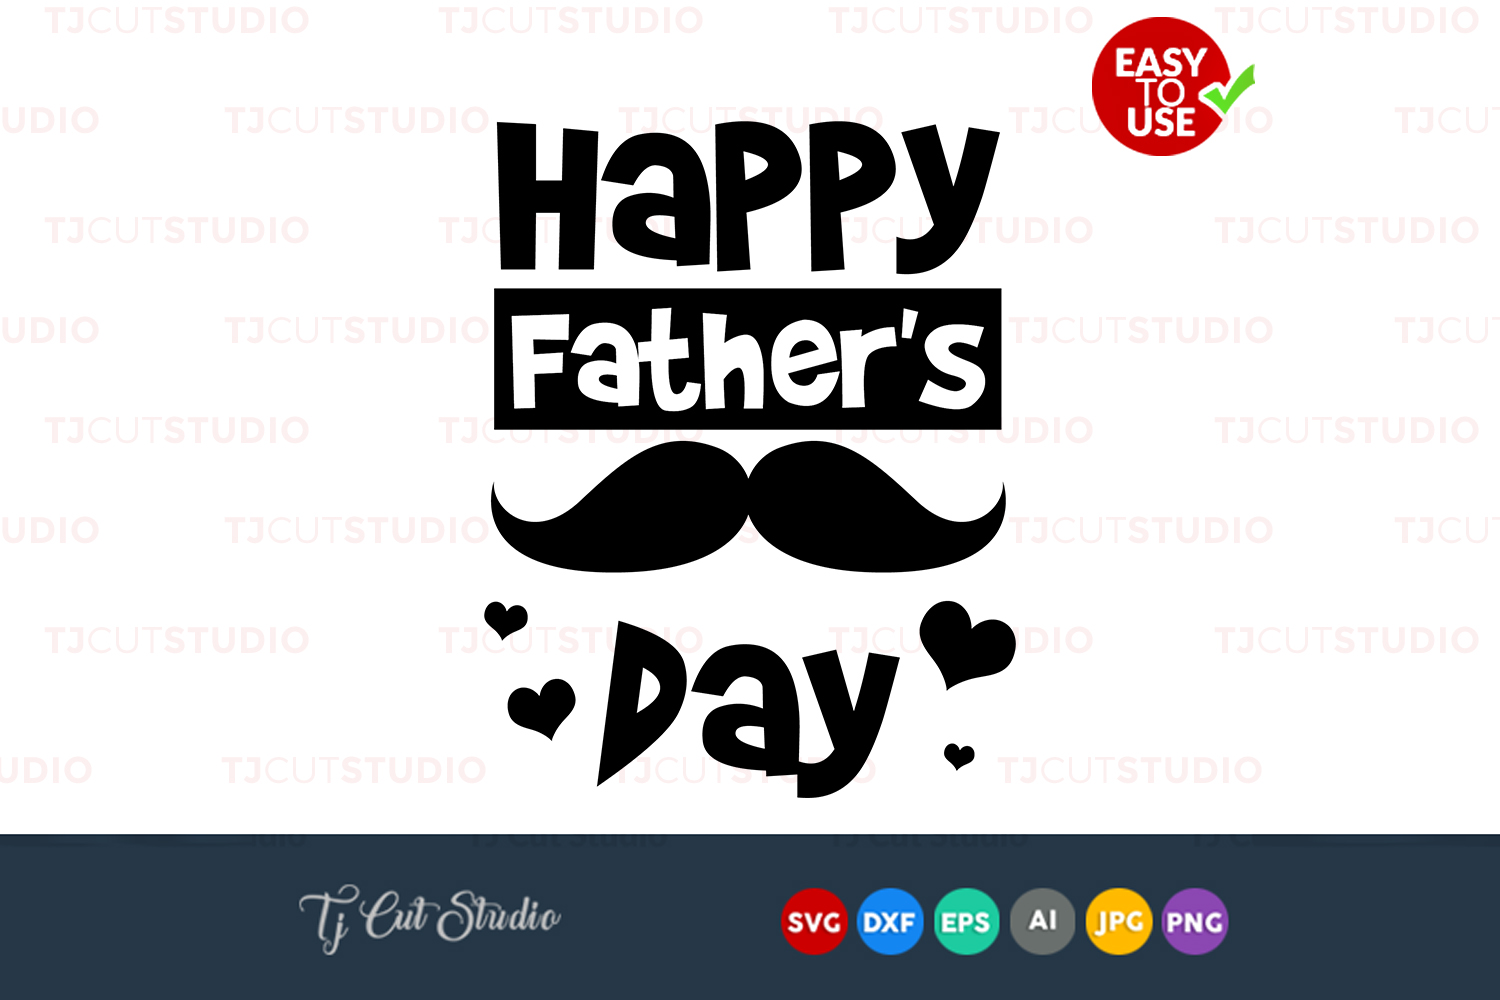 Happy Fathers day, fathers day svg, quote svg, Files for Silhouette Cameo or Cricut, Commercial & Personal Use. example image 1